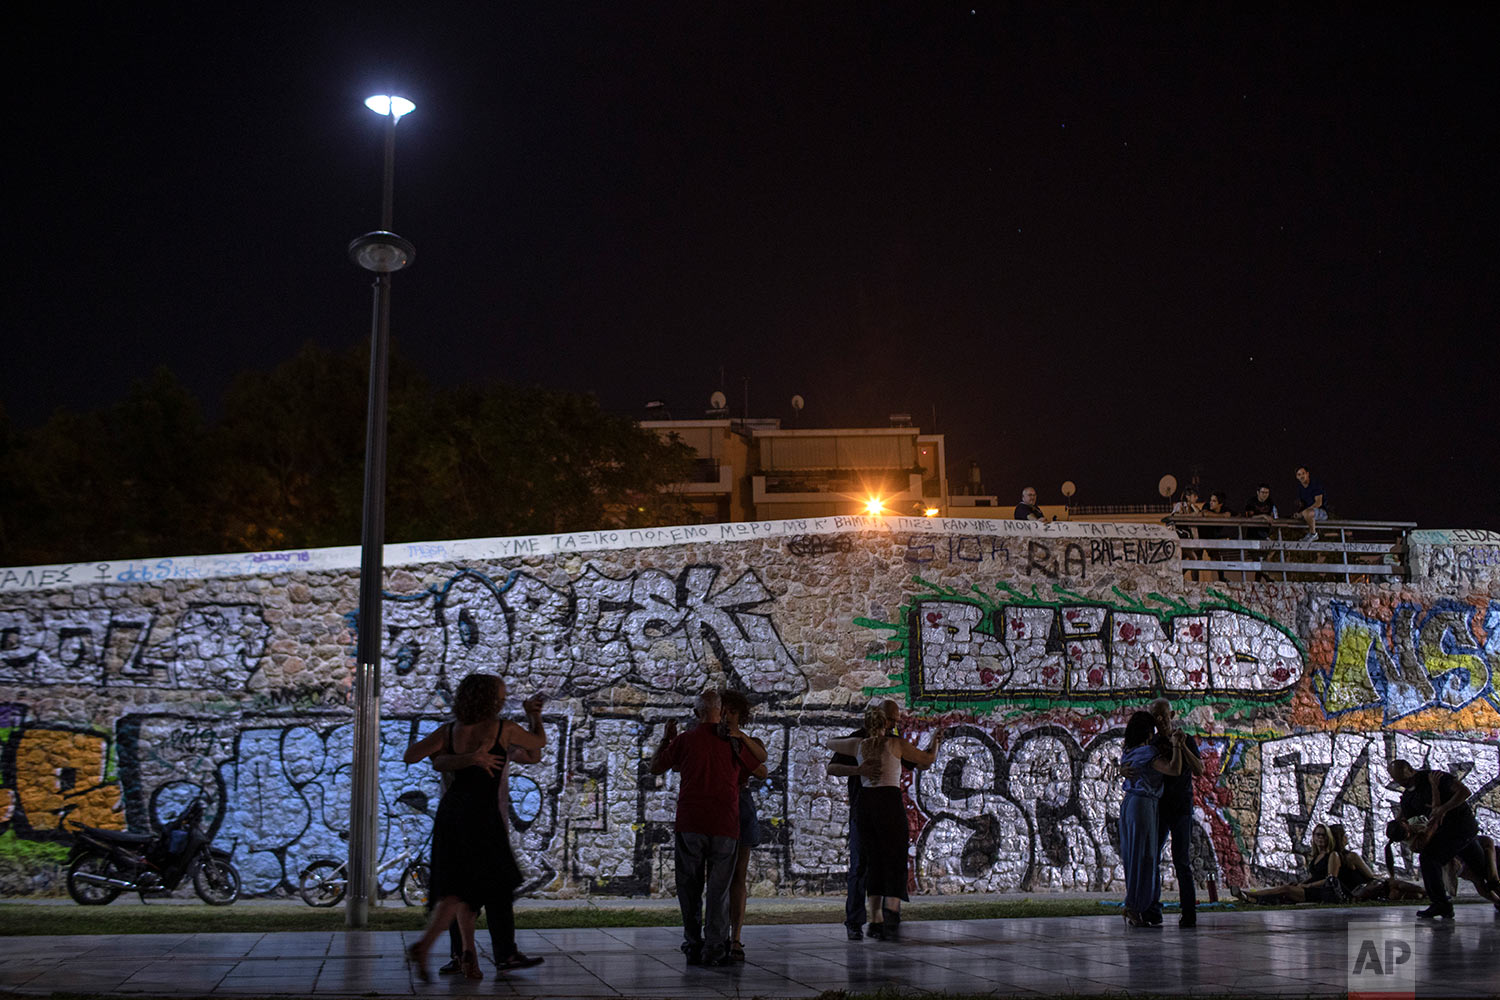 People dance tango against a stone bridge covered with graffiti in Thission district of Athens, July 26, 2019. (AP Photo/Petros Giannakouris)